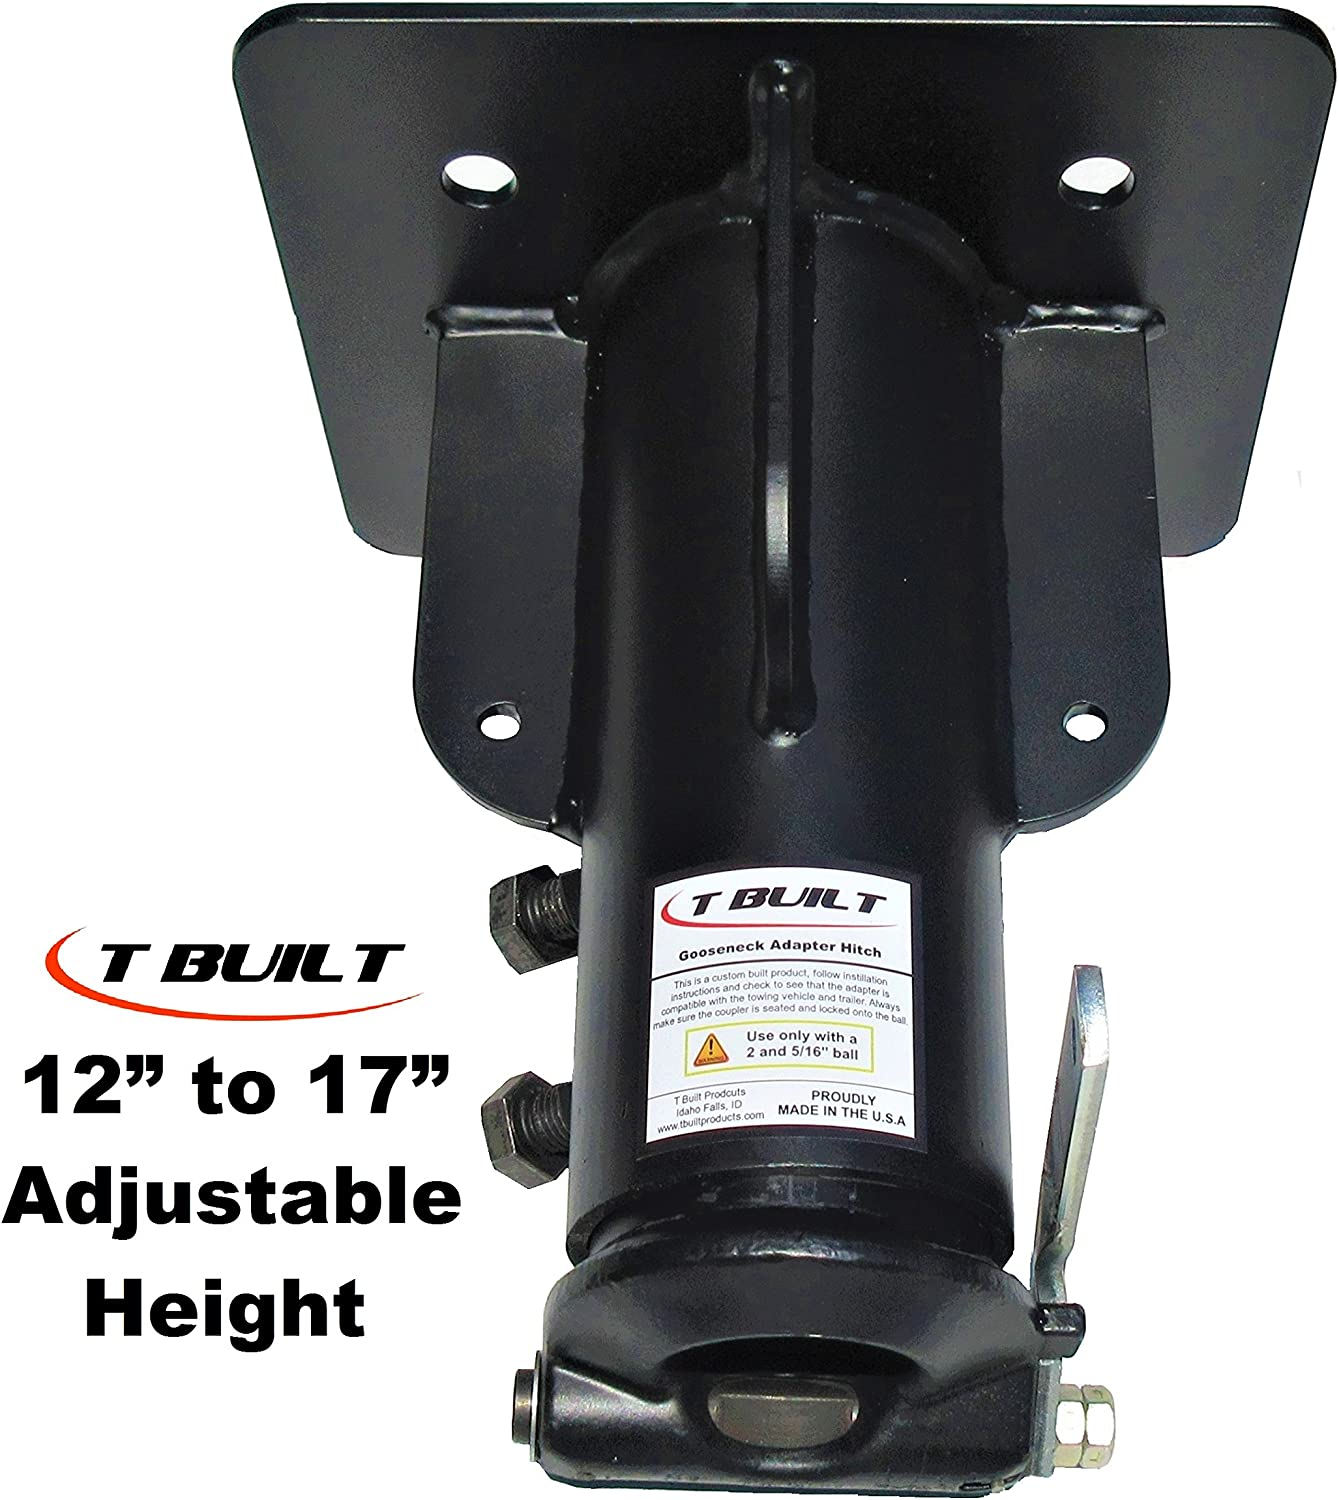 "T Built 12""-17"" Adjustable 5th Wheel RV to Gooseneck Adapter Hitch"